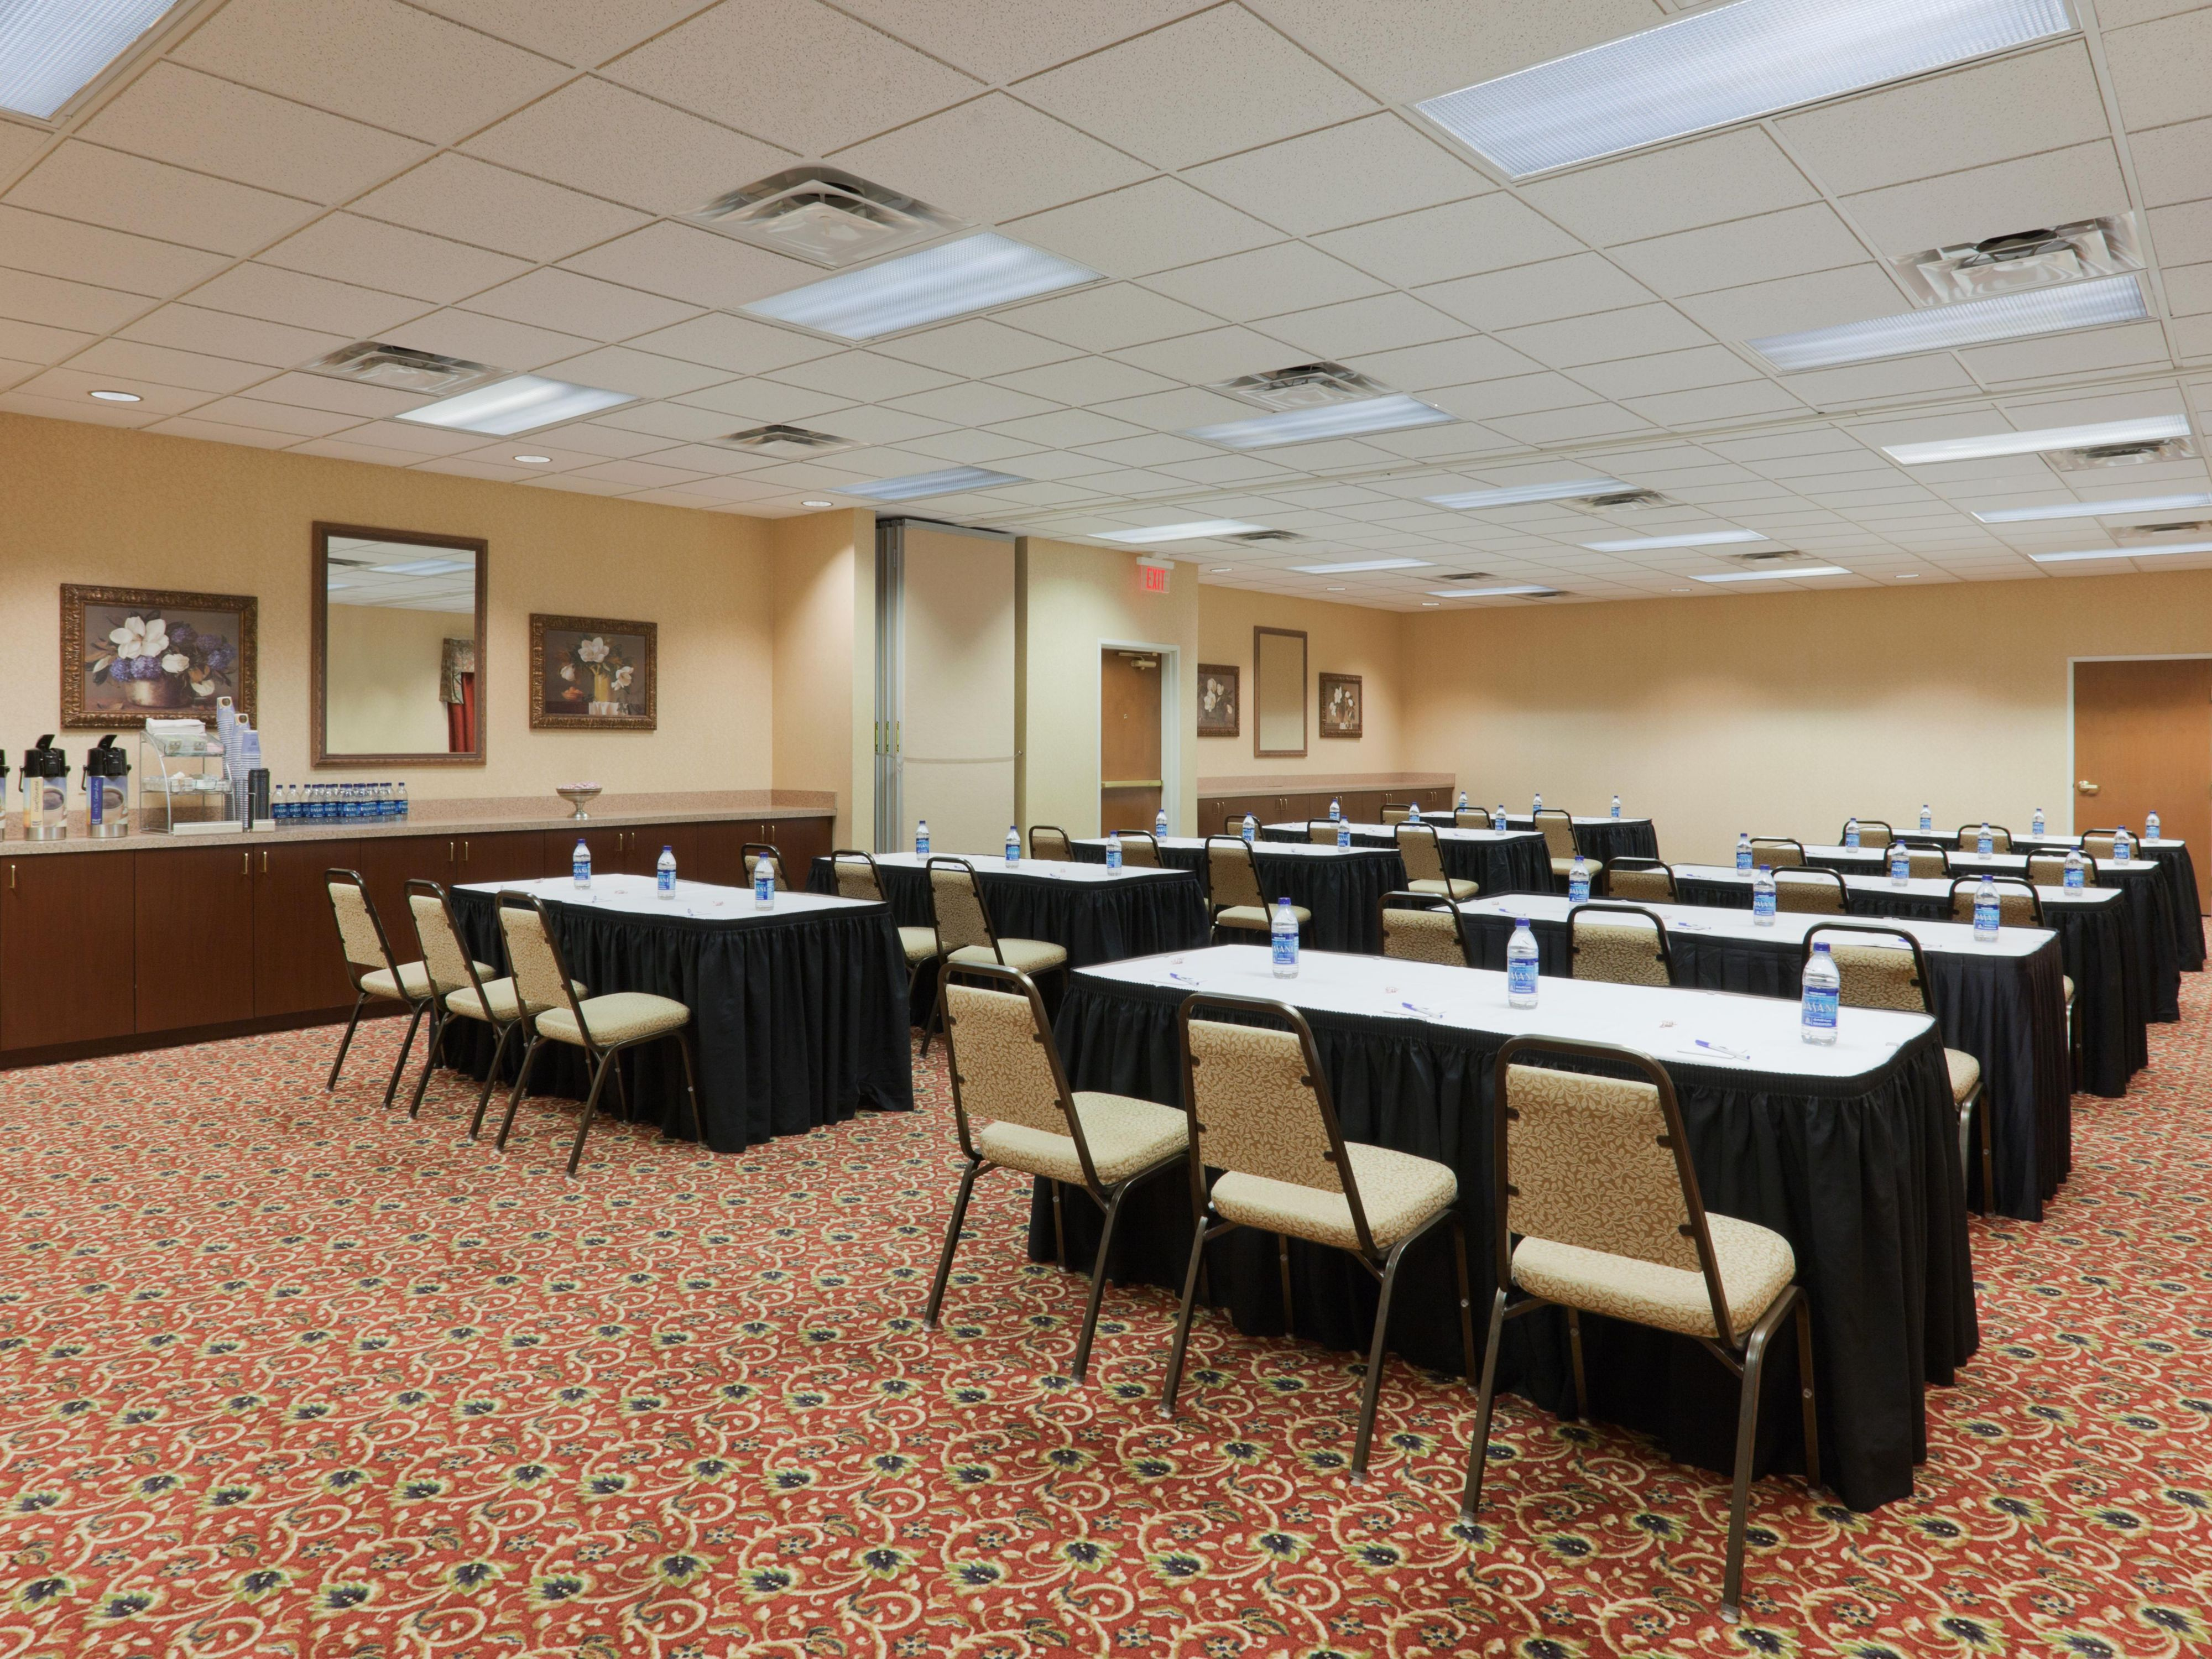 We offer meeting facilities with seating for up to 50 guests